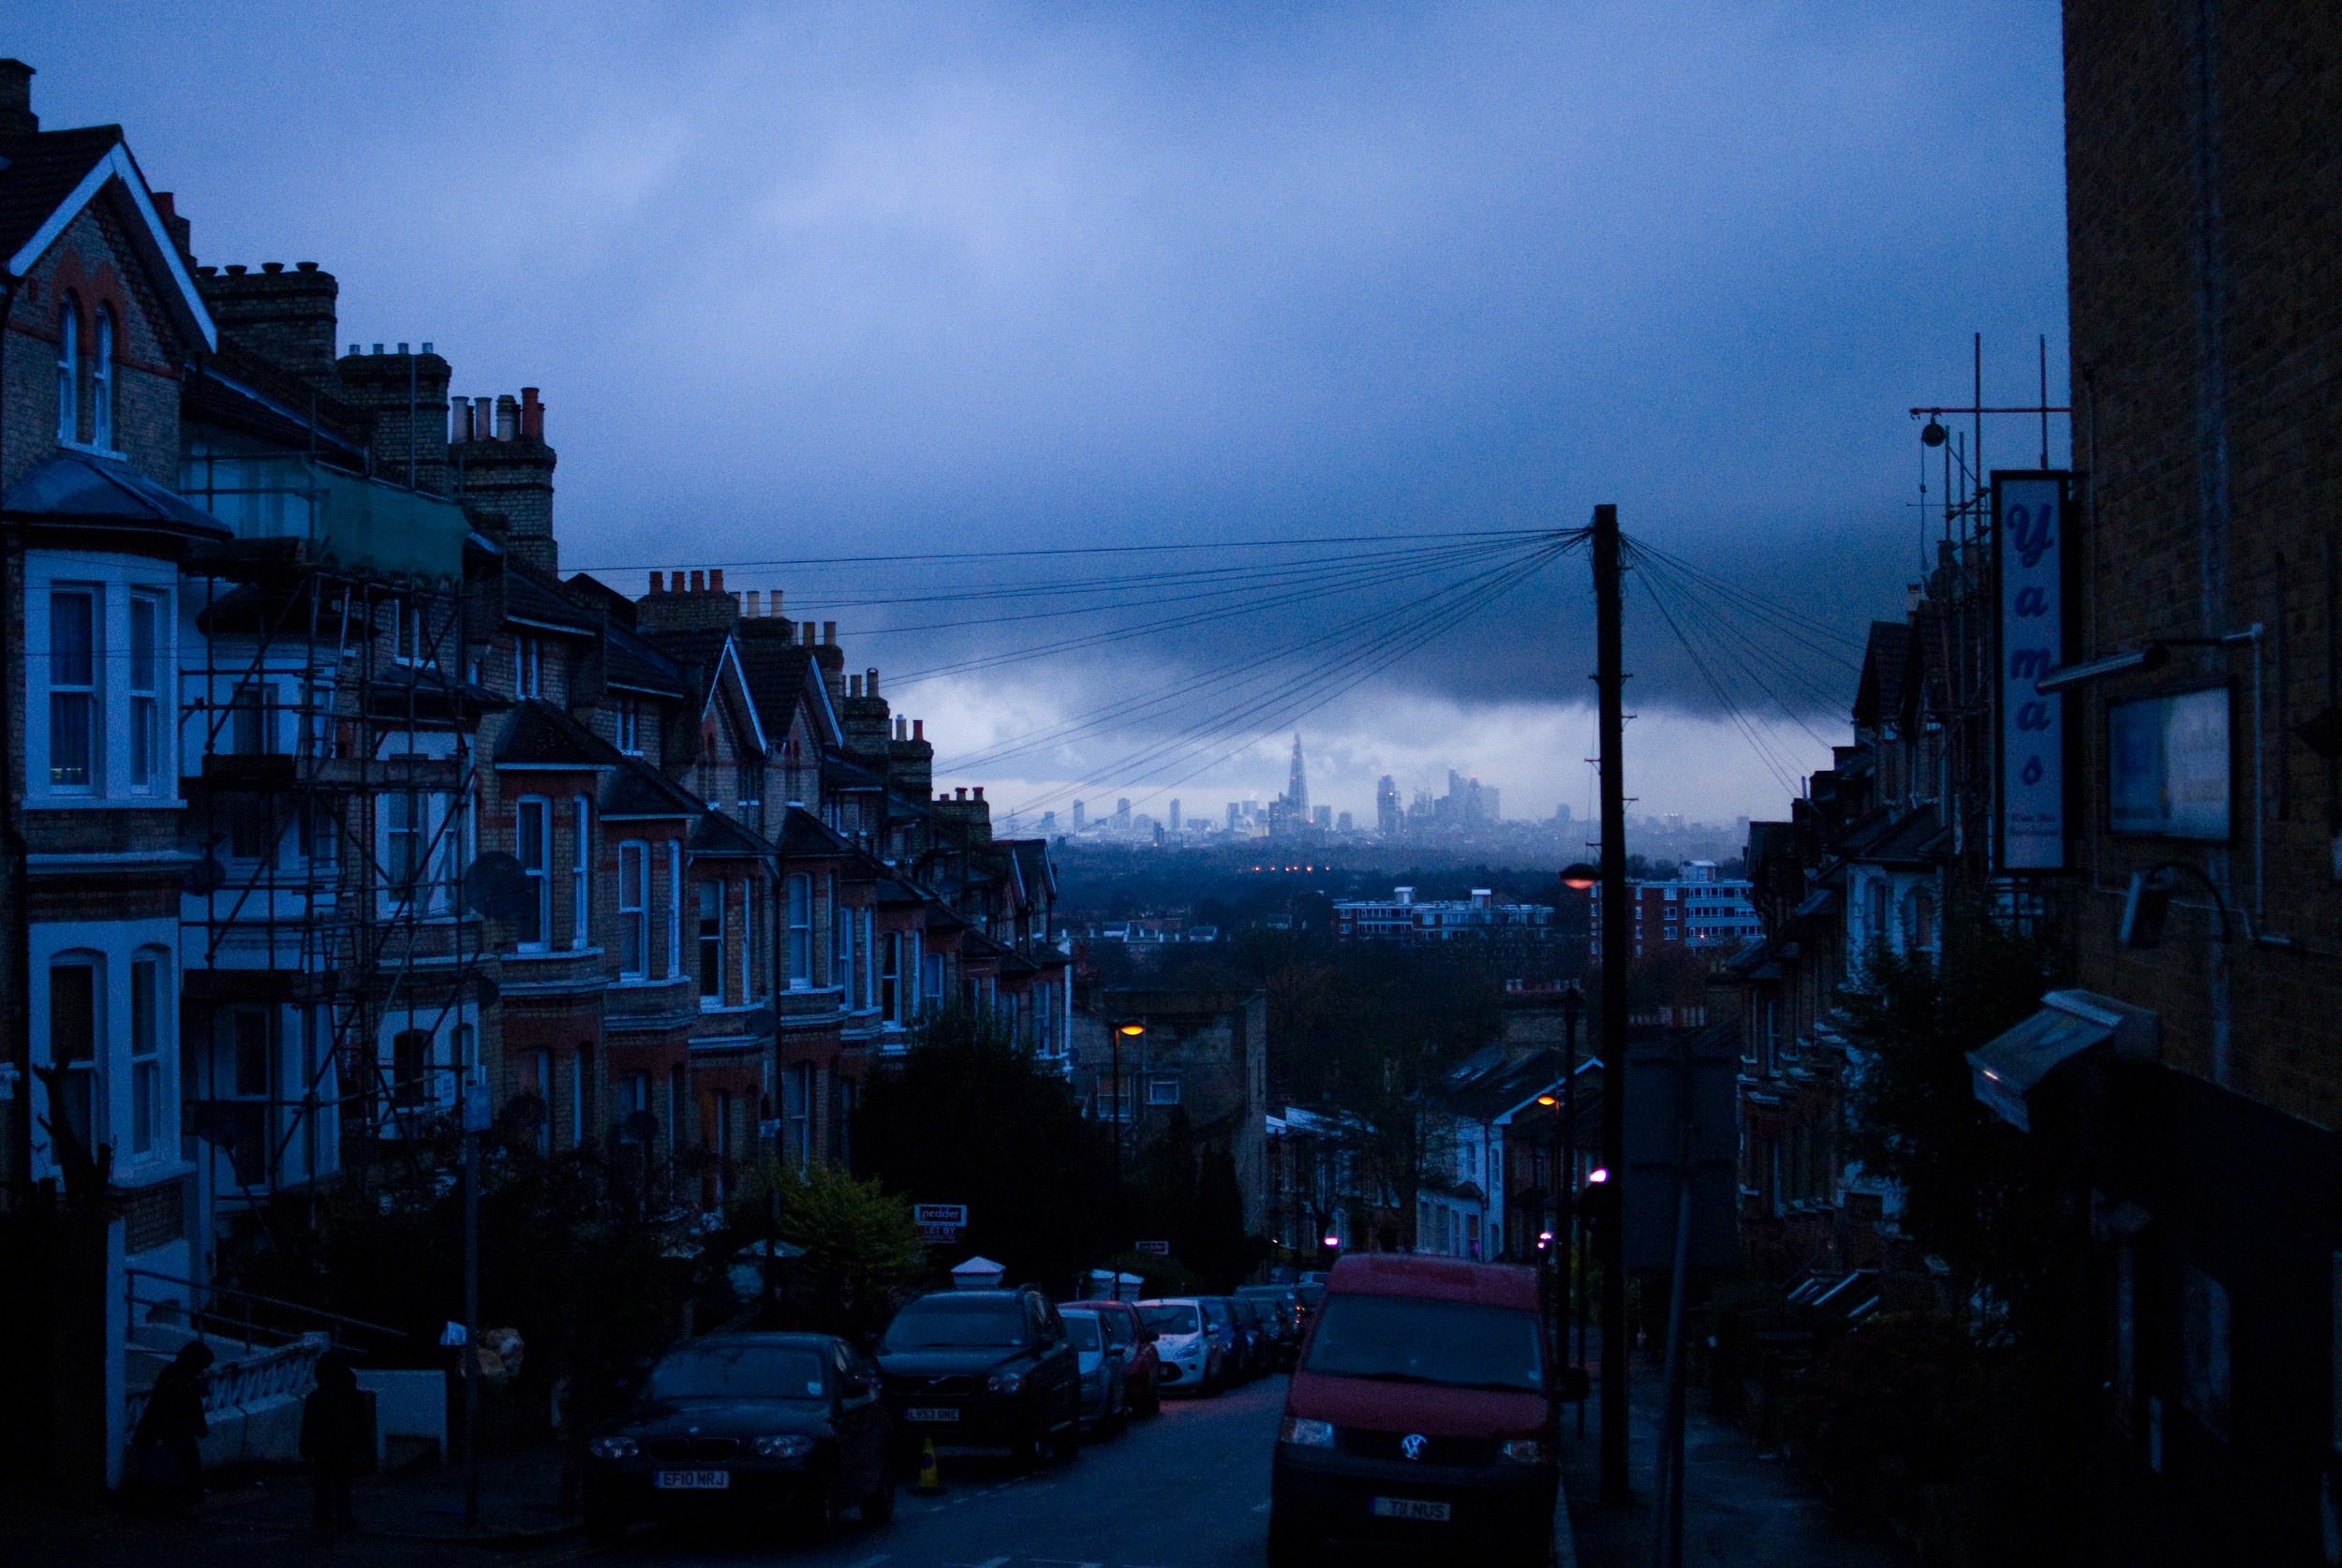 BLUE PALACE ; FROM     BACK IN THE ENDZ     SERIES